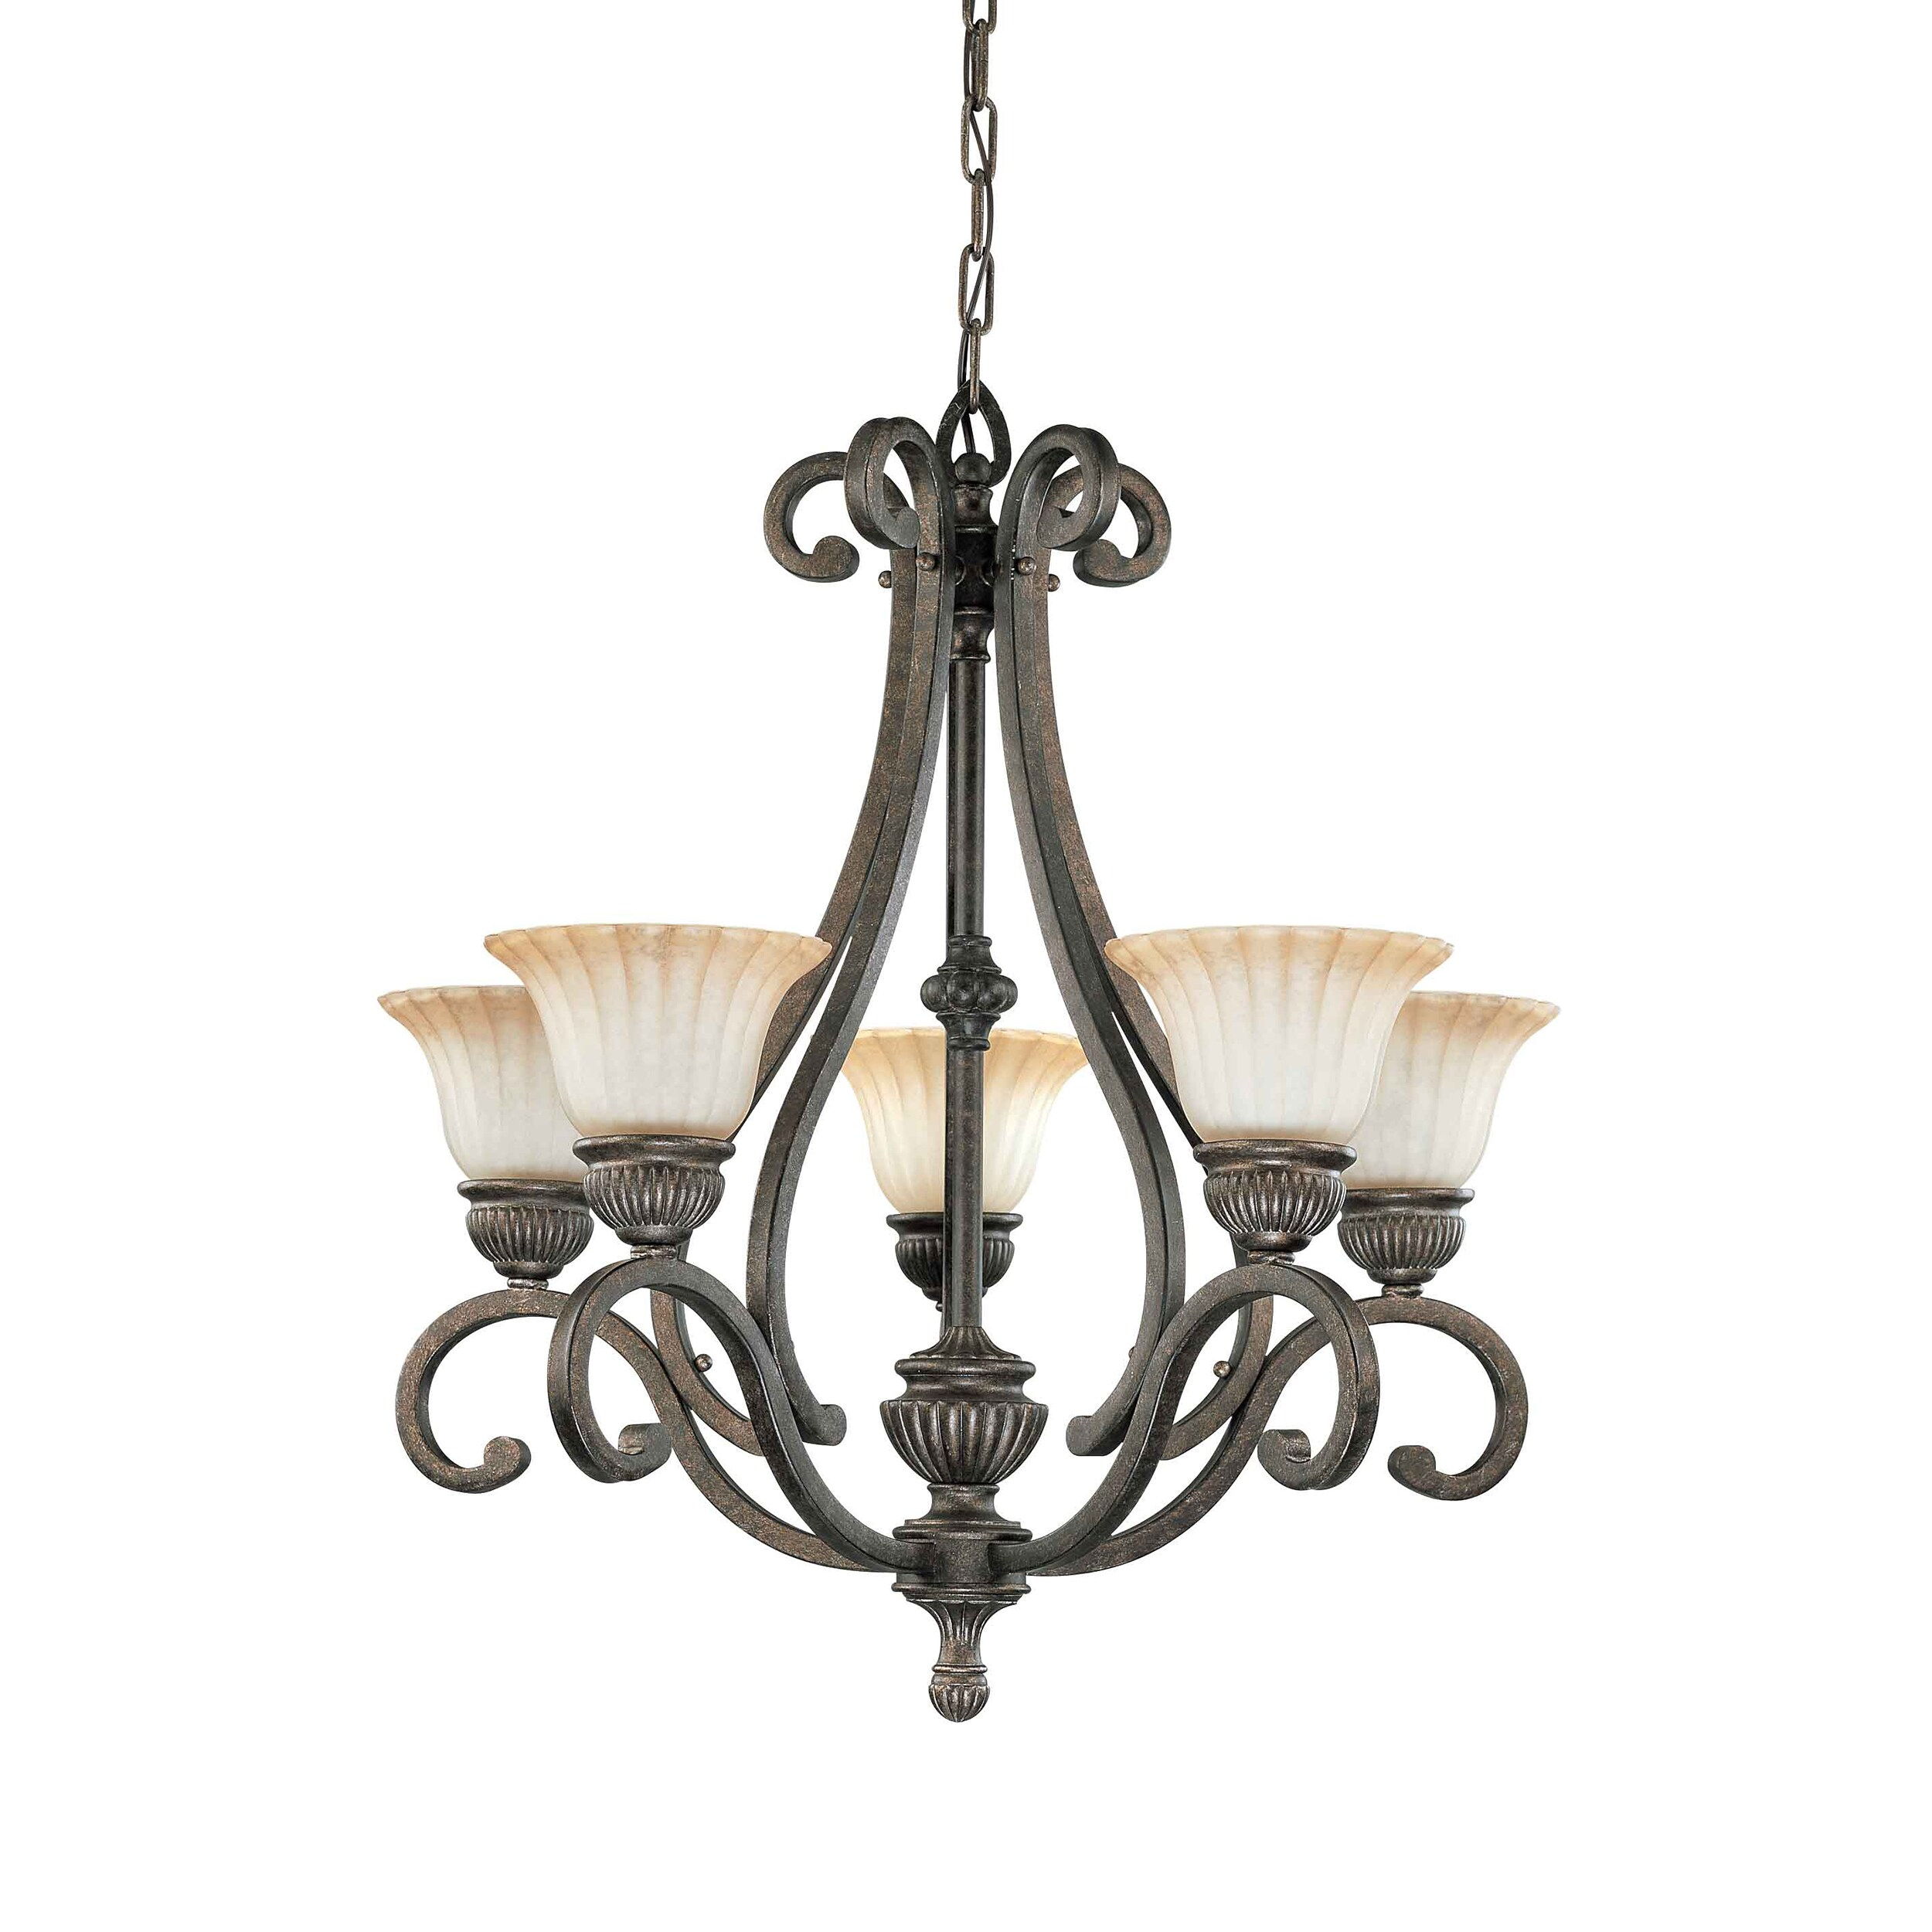 Fortunata 5 Light Lisbon Bronze With Corvo Amber Wash Glass Arm Up Chandelier